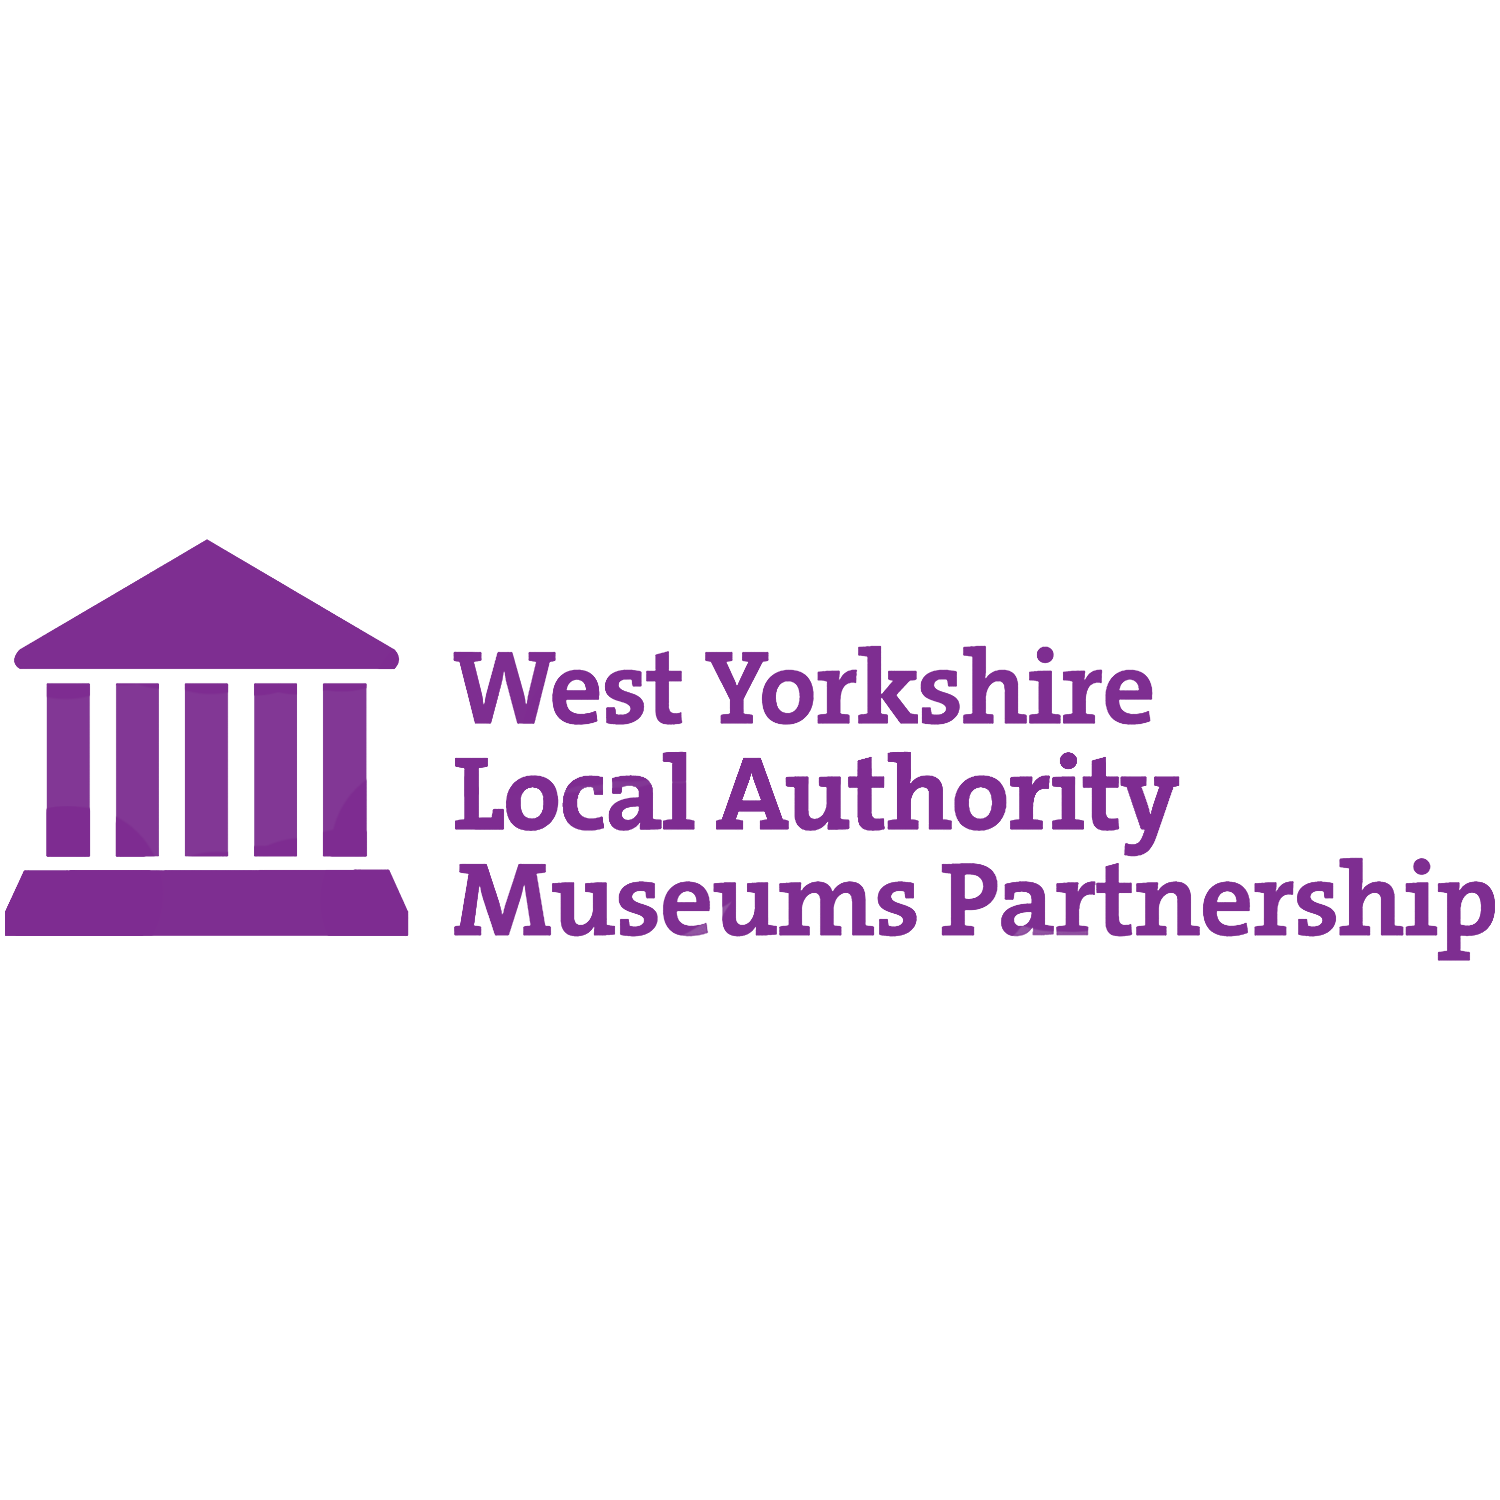 West Yorkshires Local Authority Museum Partnership logo